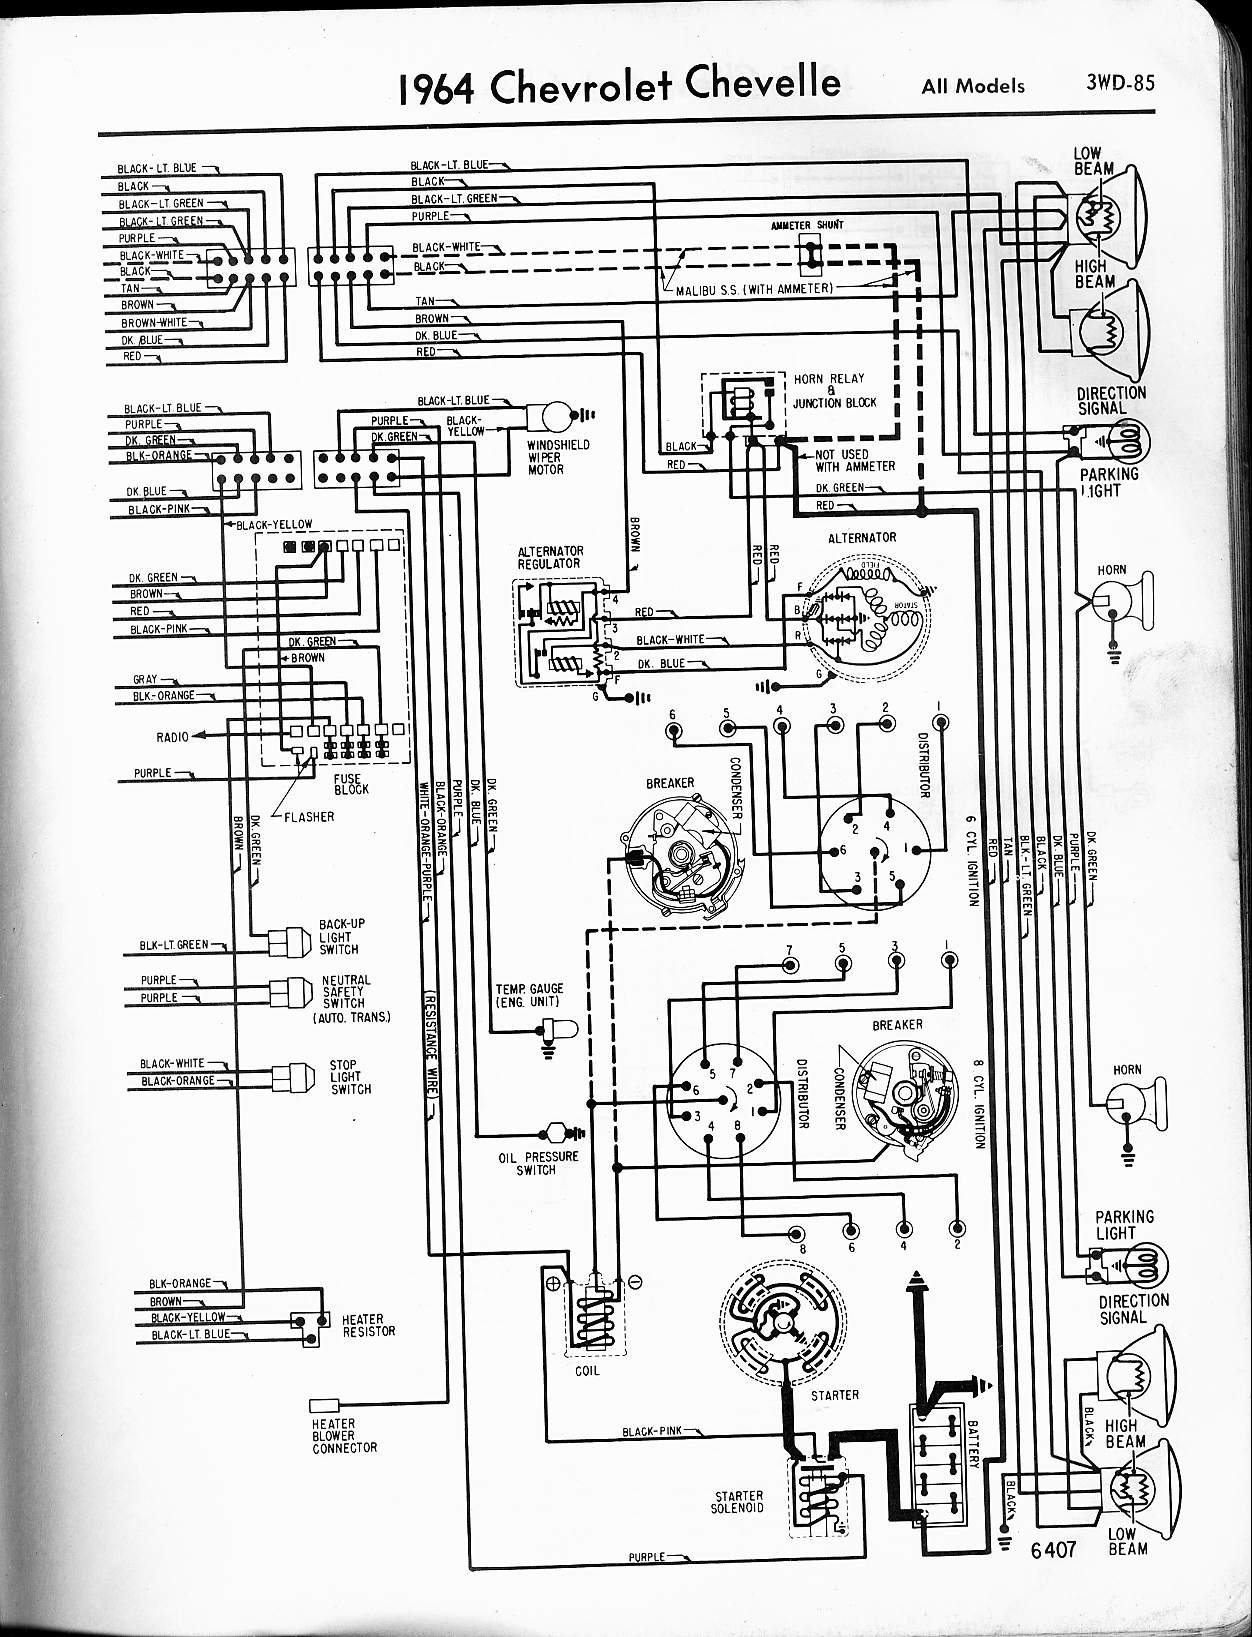 MWireChev64_3WD 085 69 chevelle wiring diagram 69 chevelle wiring harness \u2022 free 1969 chevelle horn relay wiring diagram at honlapkeszites.co